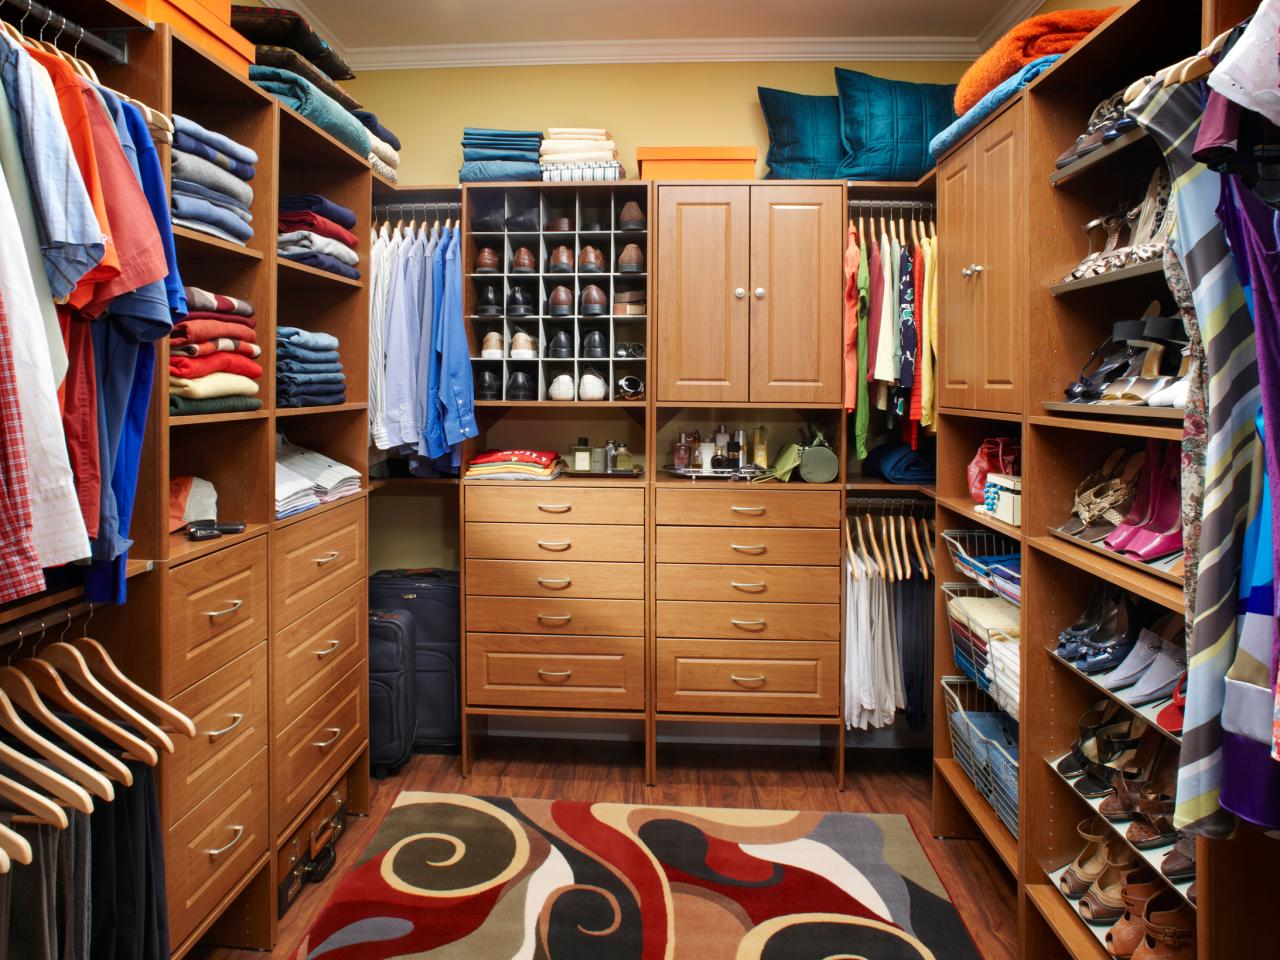 ... racks or hooks on the wall for simple storage of belts ties kitchen cooking pans or a broom depending on the room of the house in which the closet ... & Big Closet Design Ideas - Kansas City Custom Closets